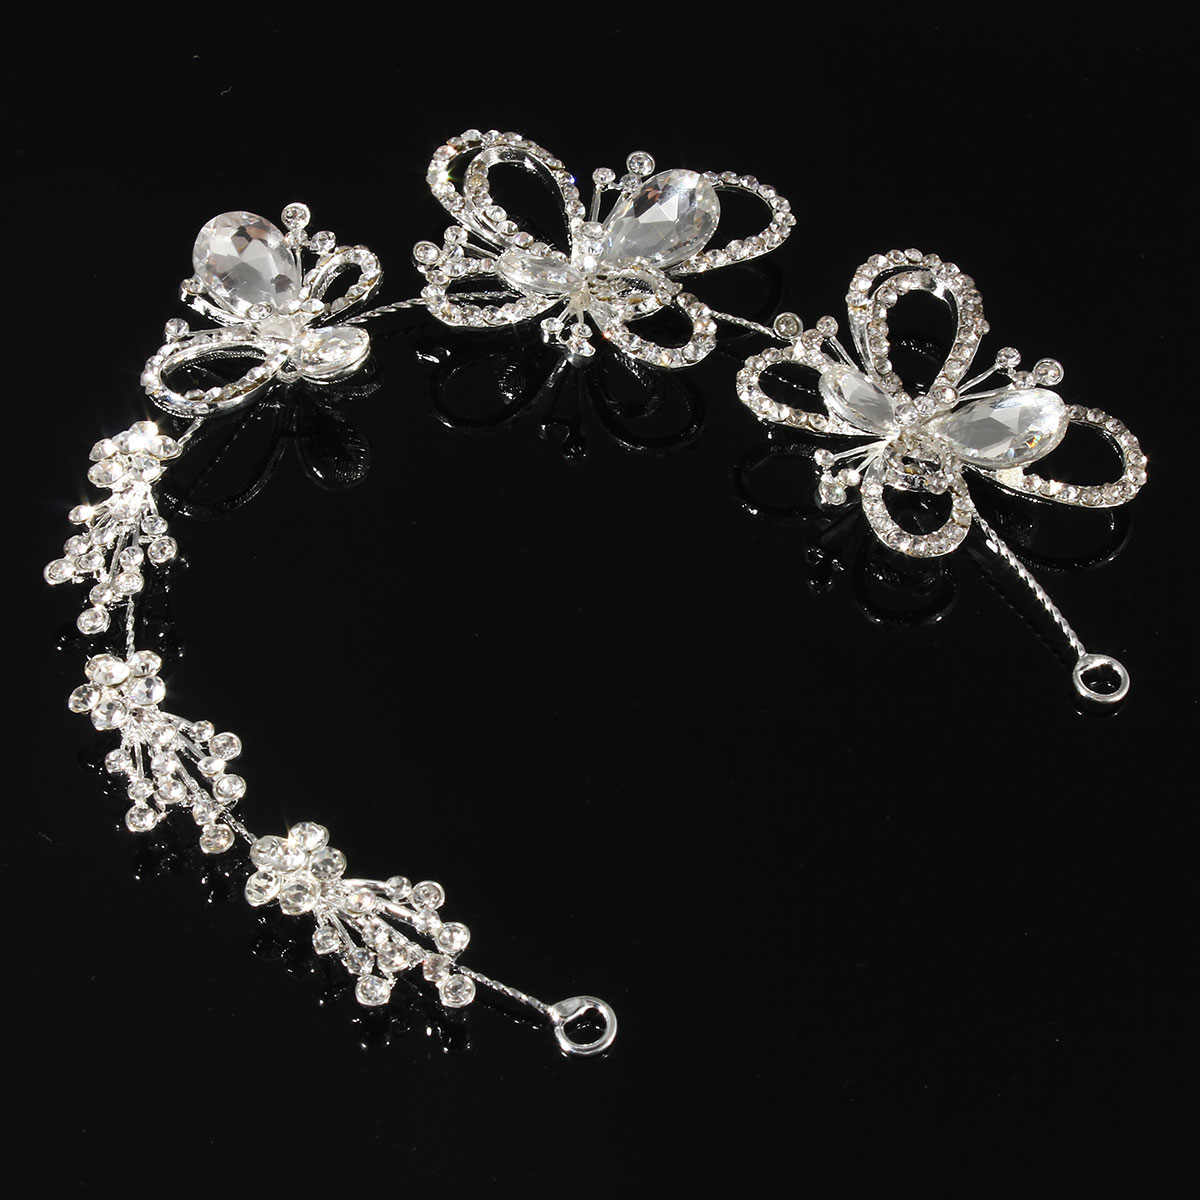 Bride Butterfly Rhinestone Crystal Bridal Tiara Wedding Hair Band Crown Headpiece